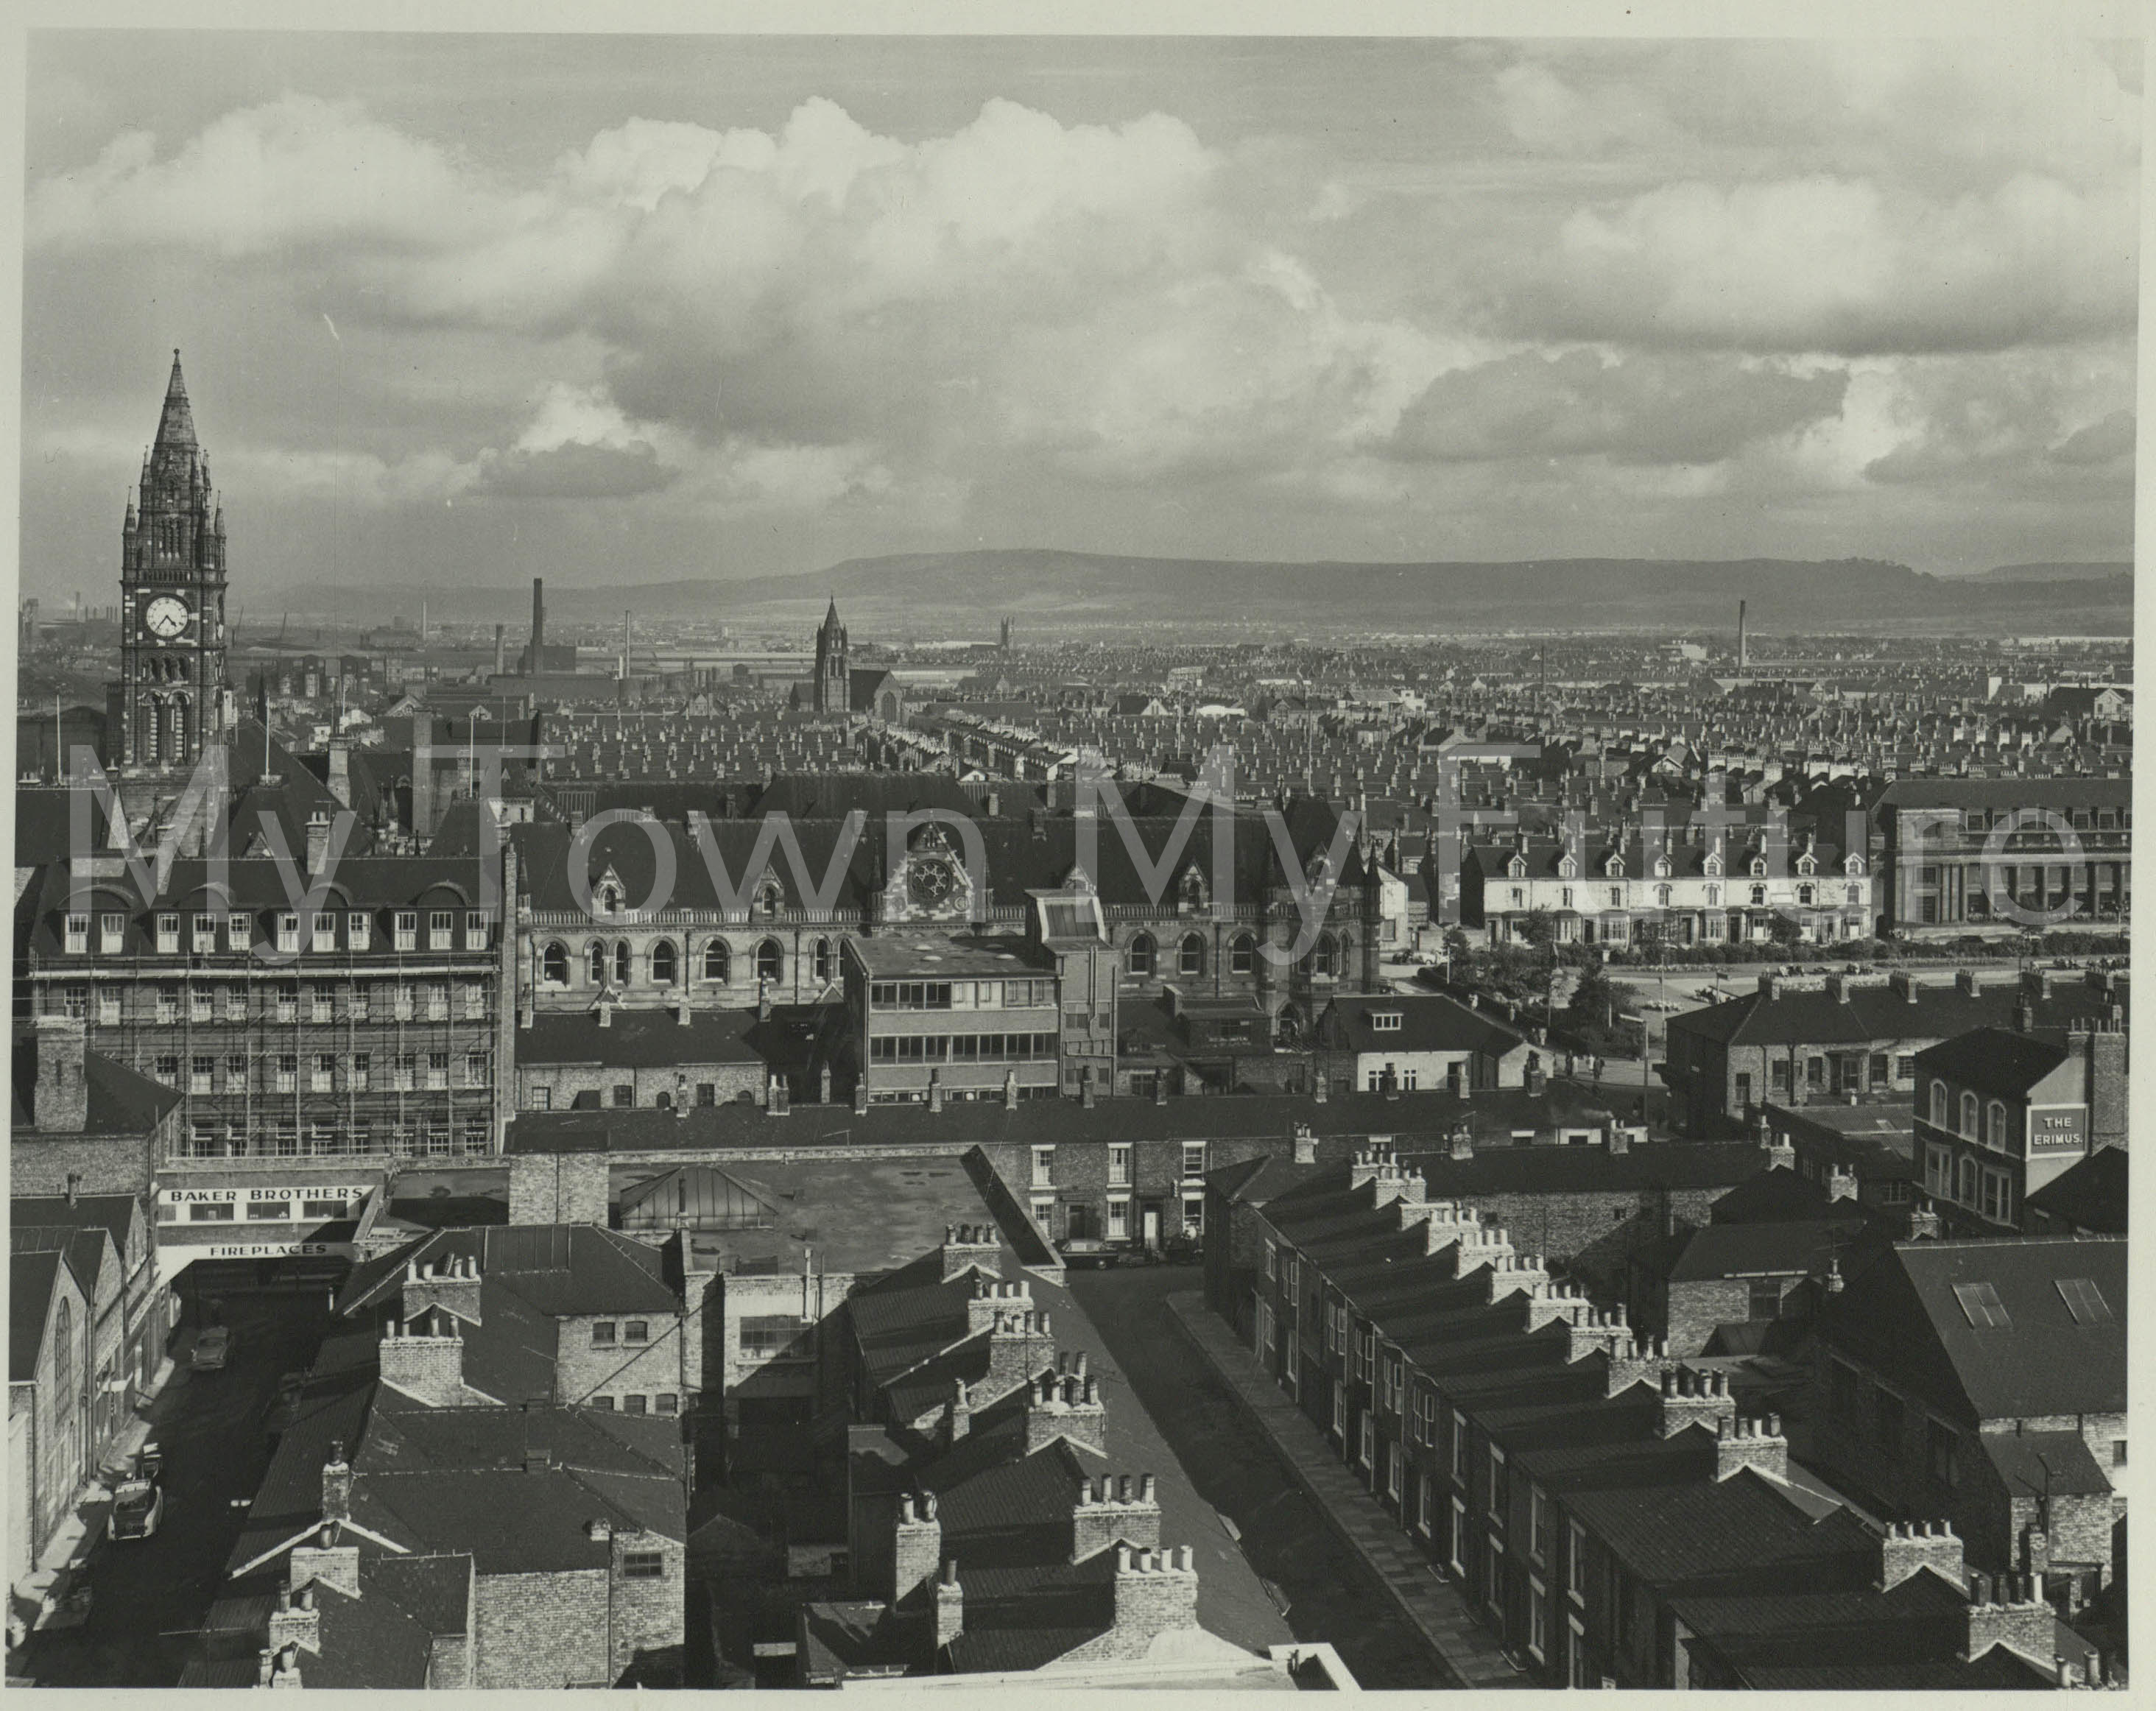 Middlesbrough View From Top Of Binns, 1960, Department of Planning - Cleveland County Council